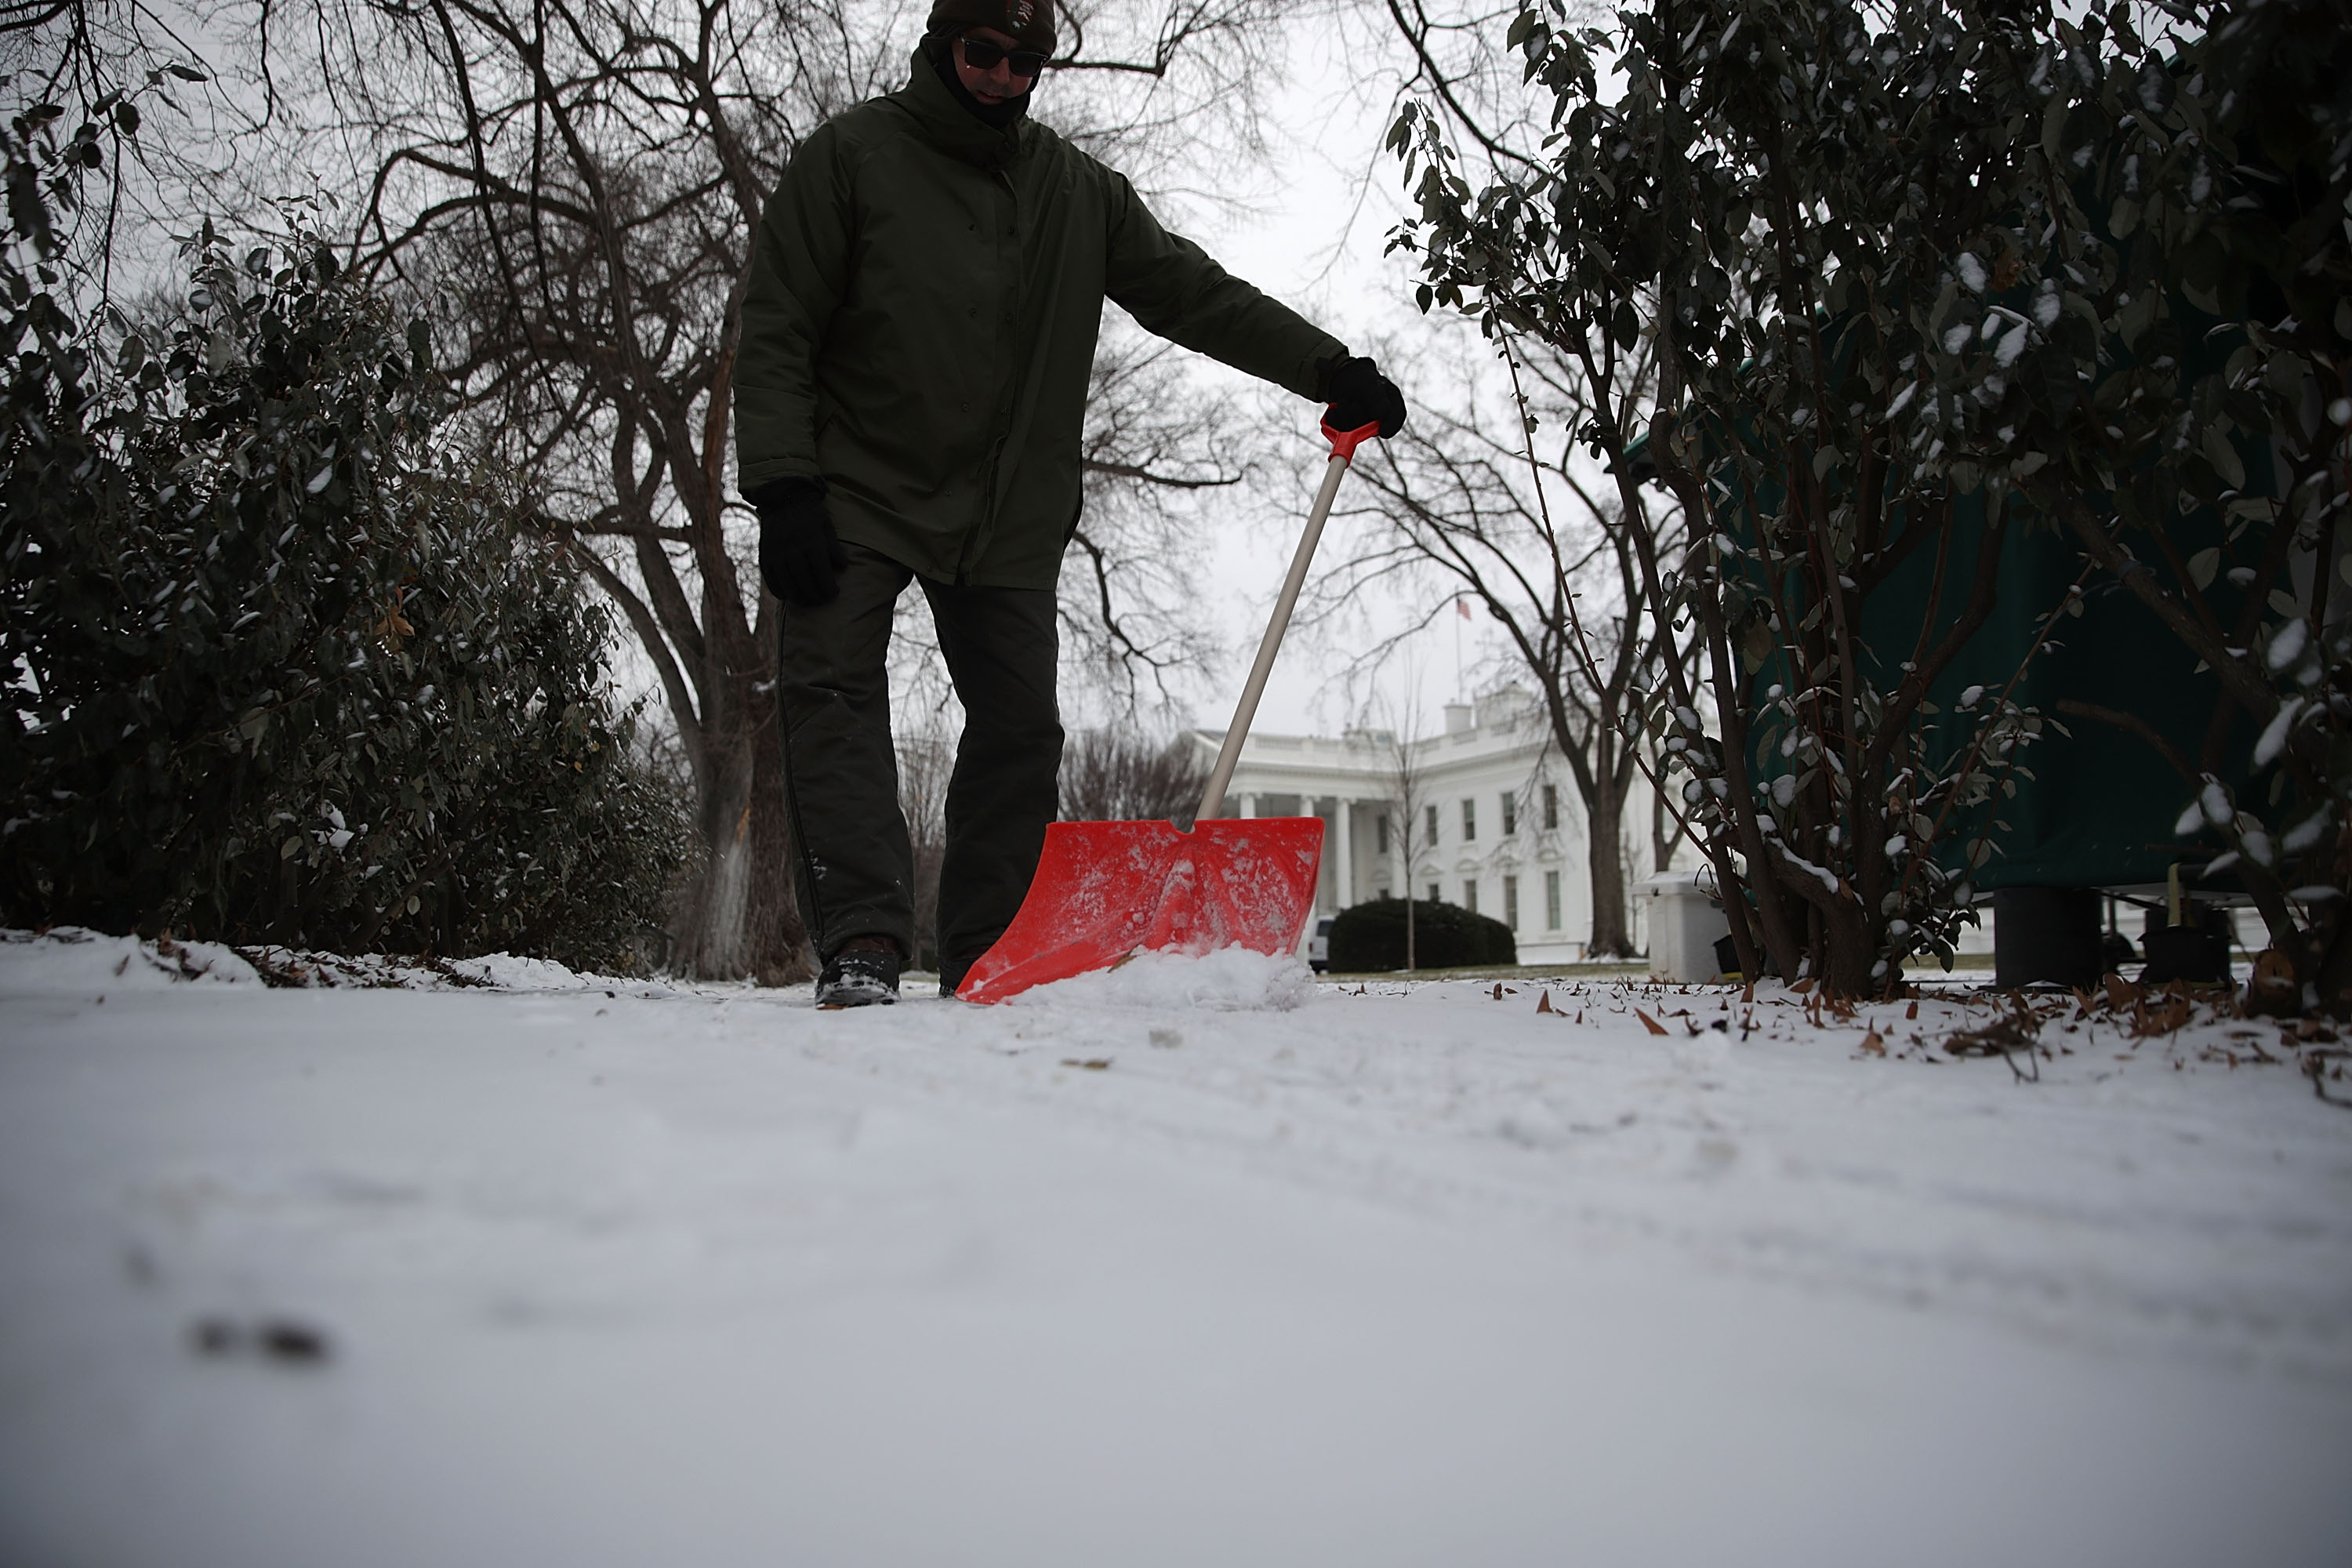 Massive Winter Storm Brings Snow Across Large Swath Of Eastern States